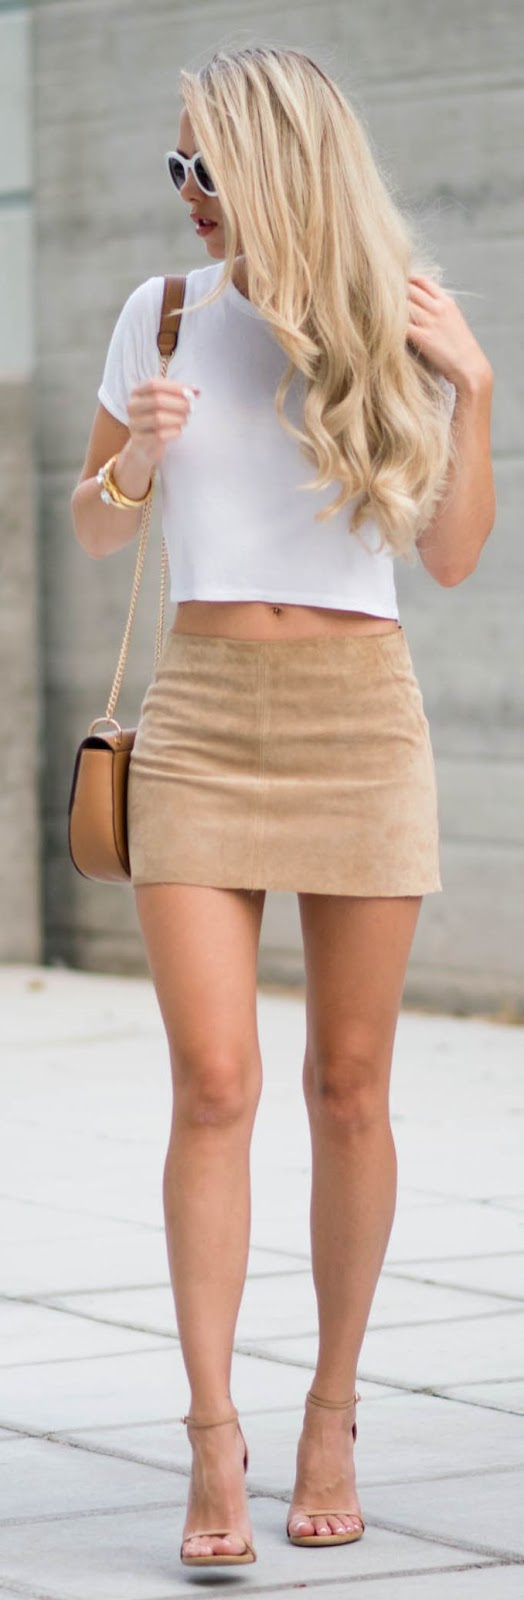 Suede Low Rise Skirt by Kier Couture